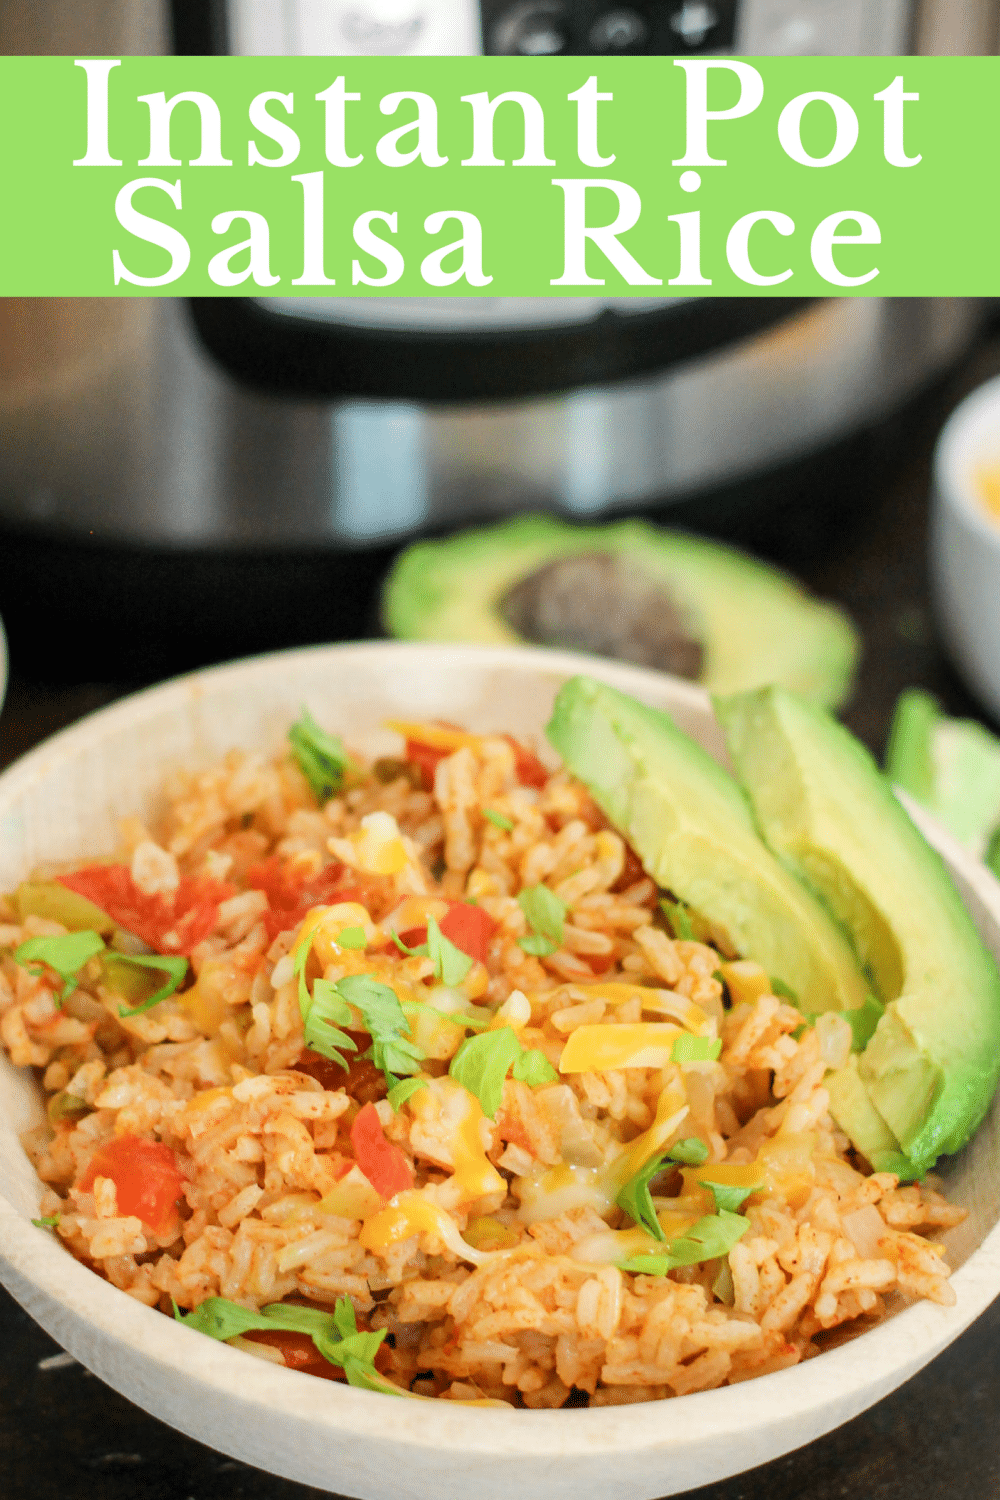 Instant Pot Salsa Rice is the perfect meal or side dish to your favorite Mexican inspired dinner! Filled with fresh vegetables and only 4 minutes in the Instant Pot and this rice is ready to eat!